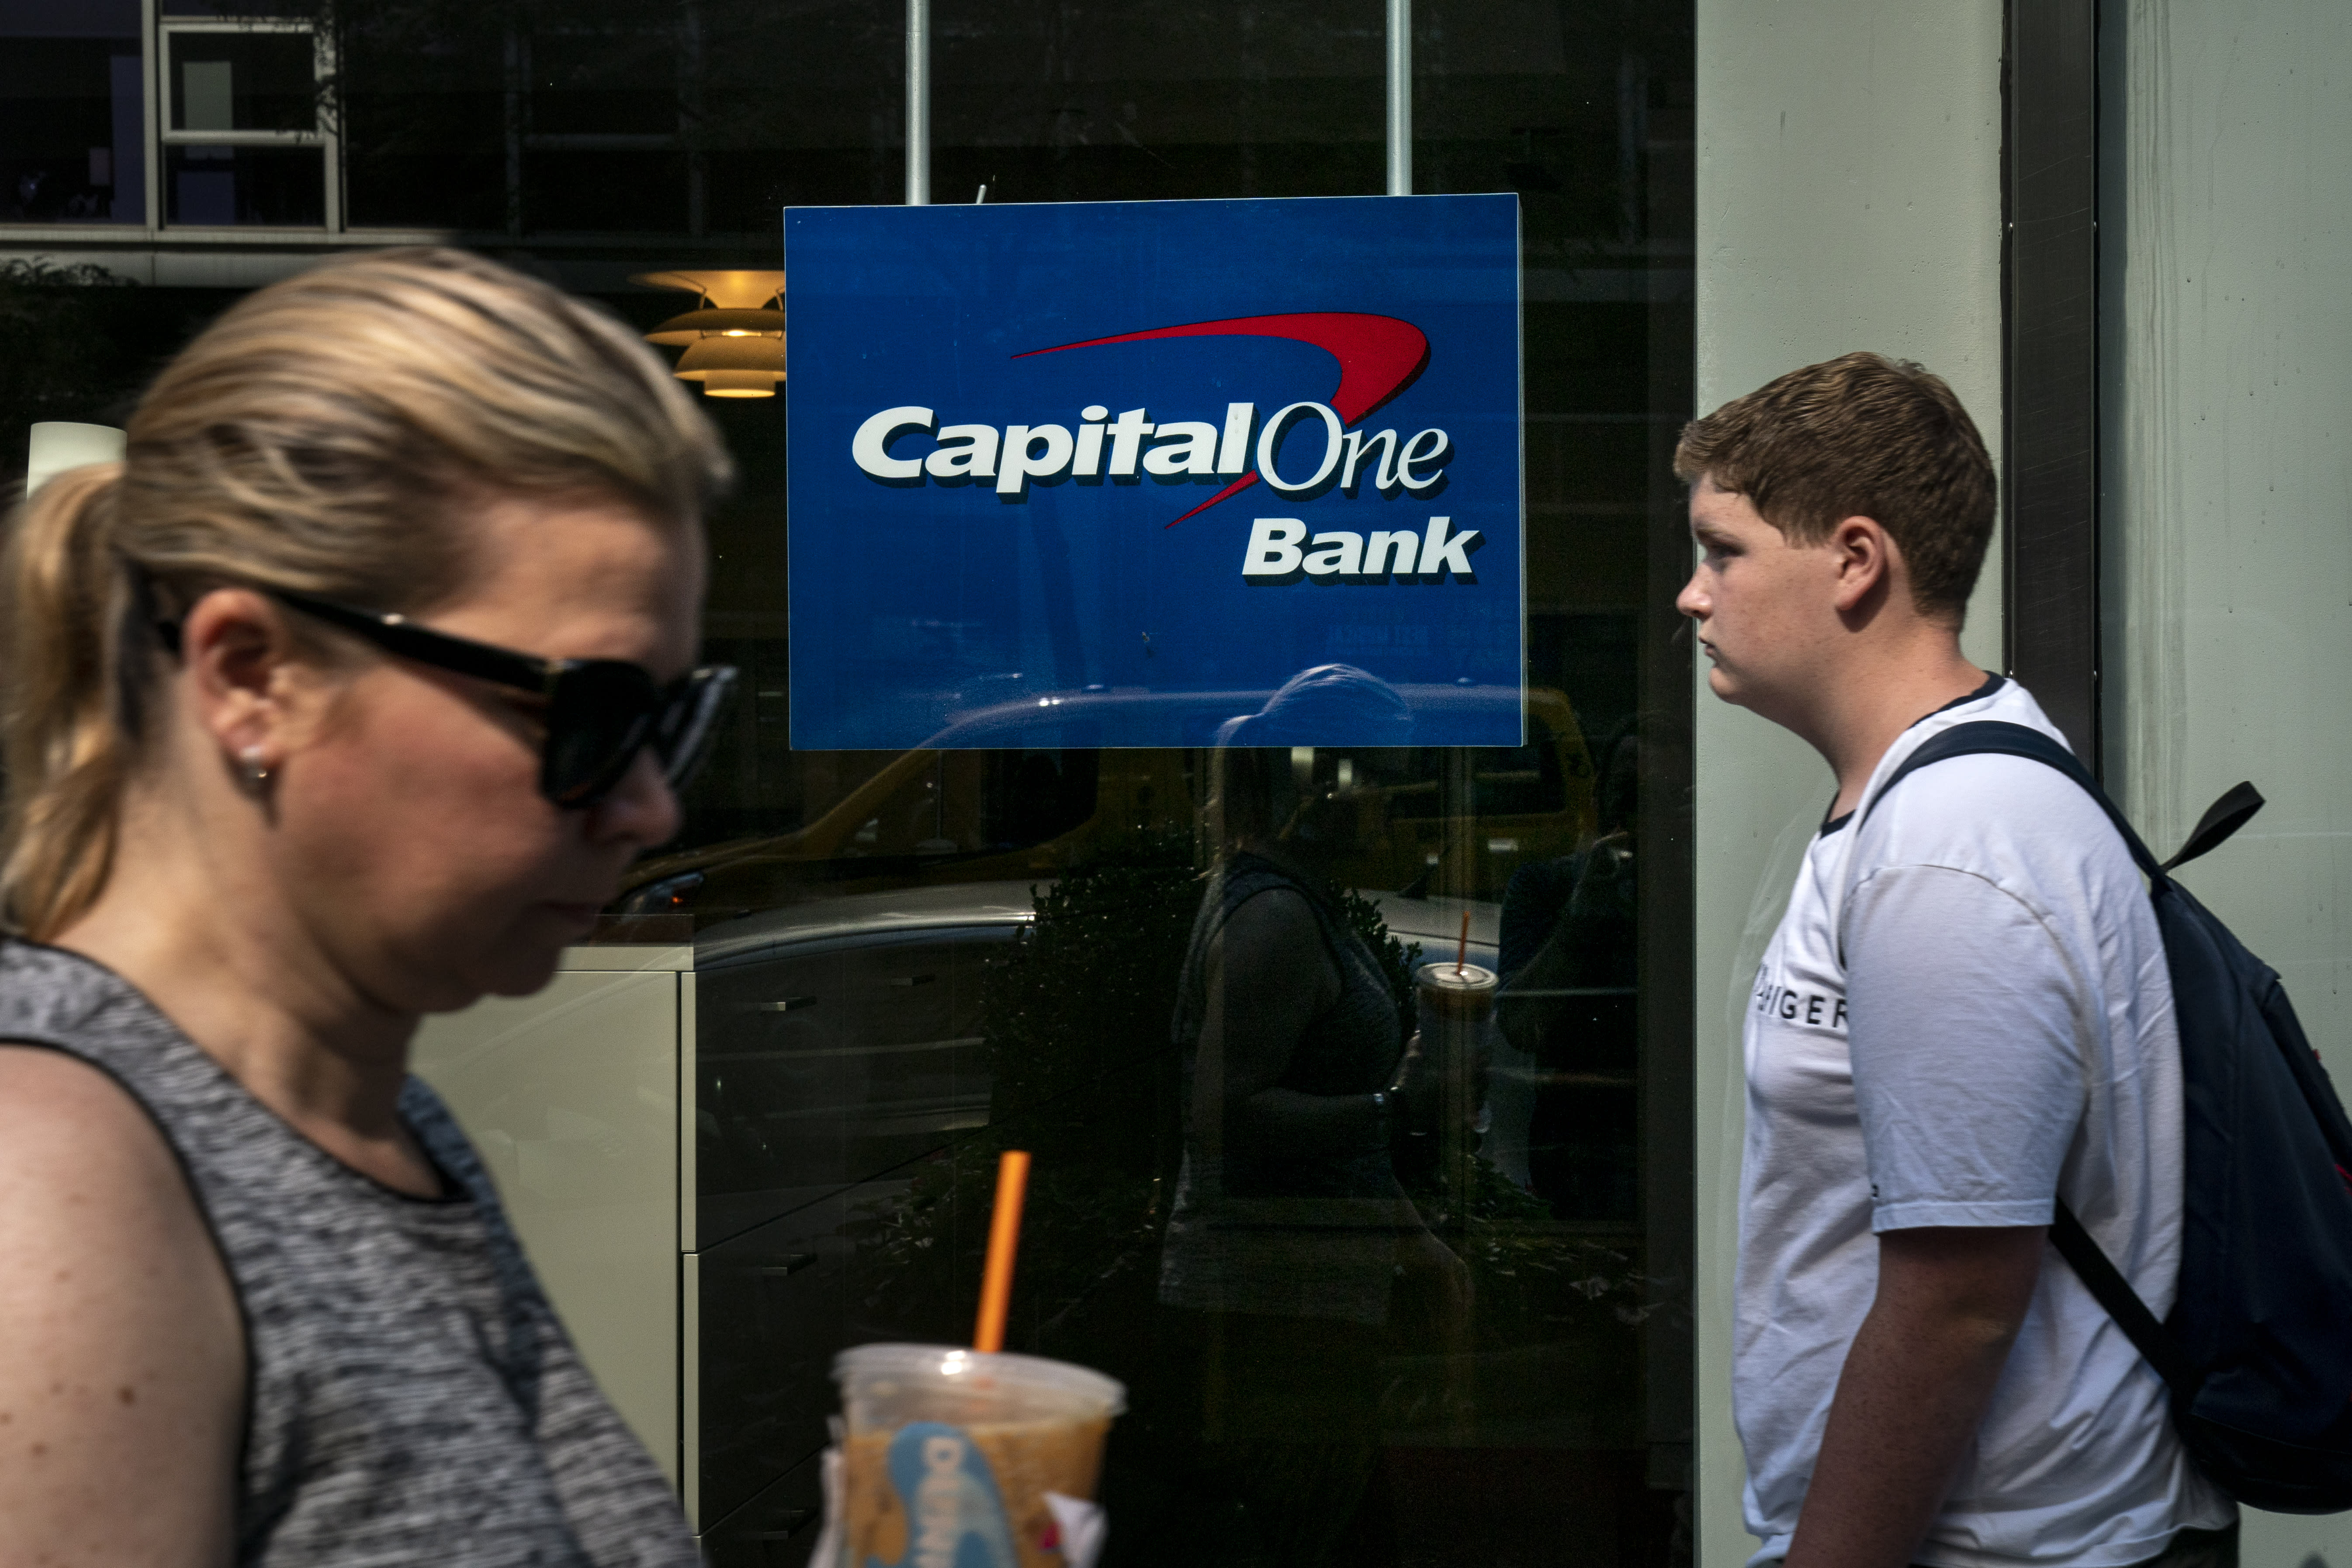 Capital One data theft raises questions about securing Amazon Web Services accounts